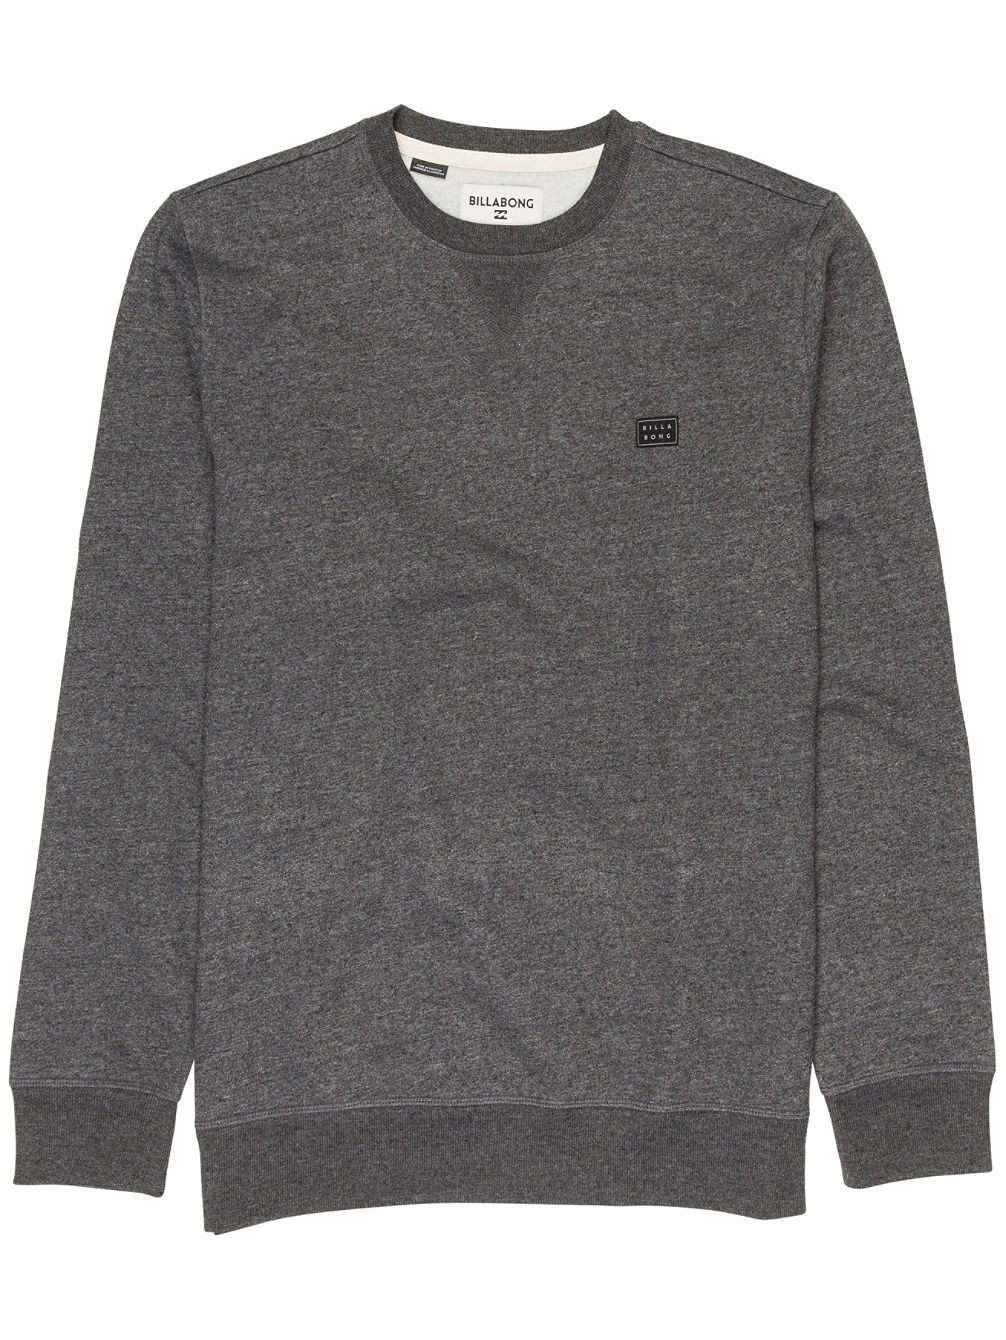 All Day Crew Sweater